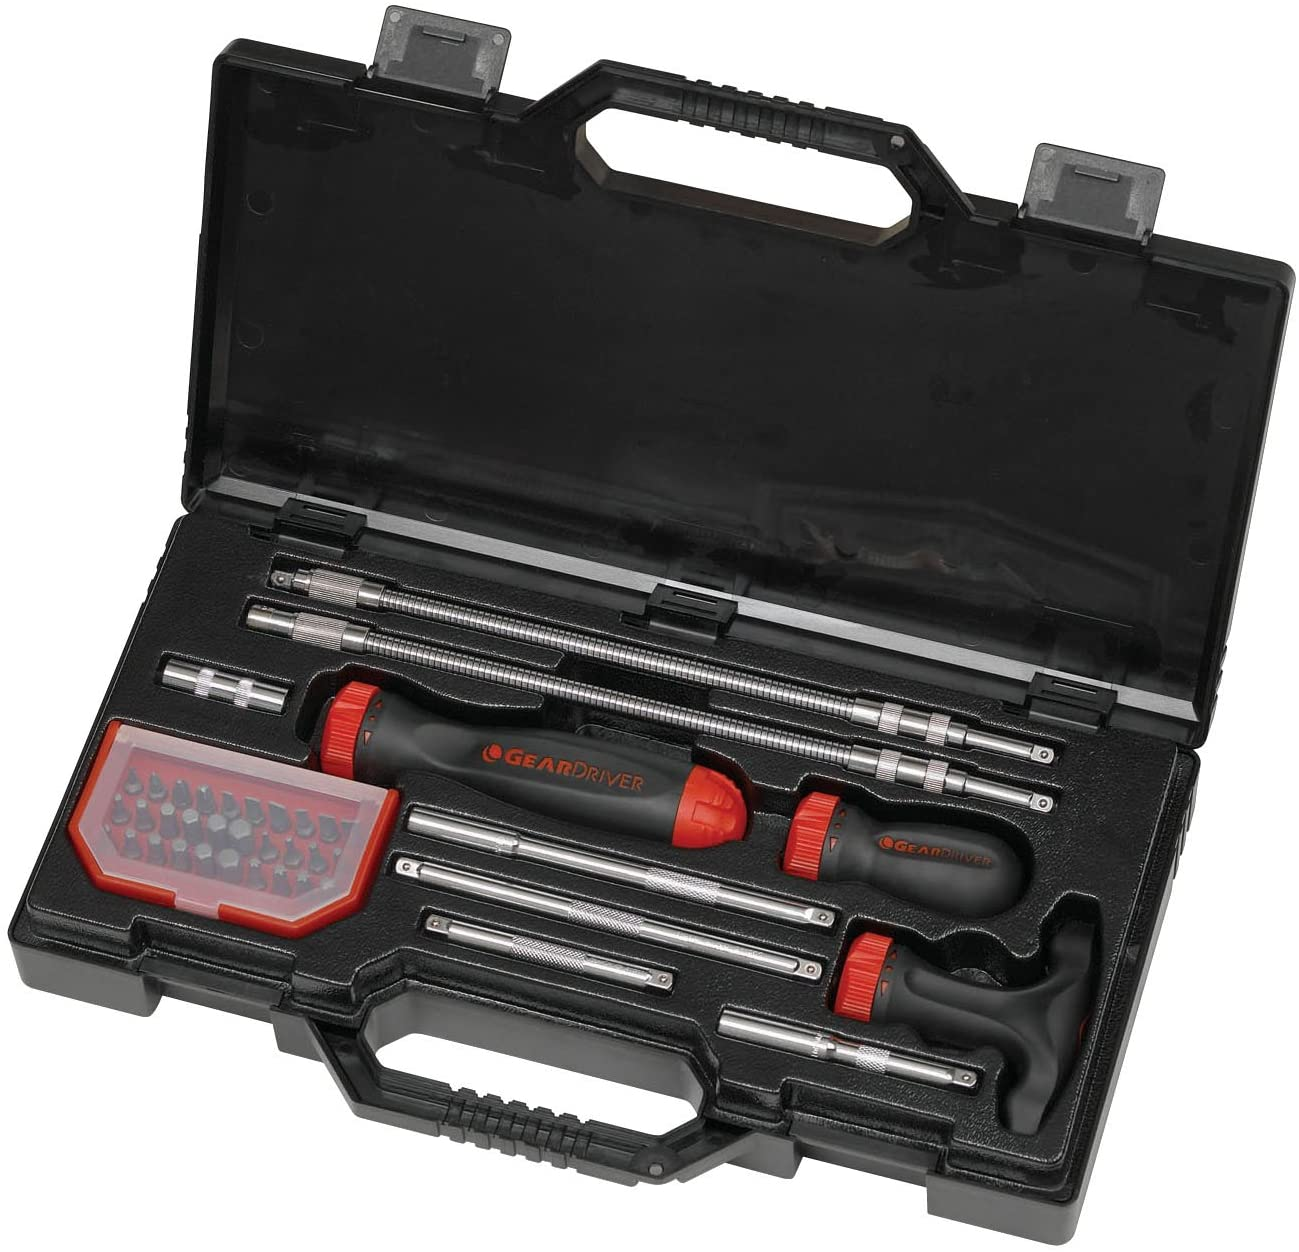 GEARWRENCH 40 Pc. Ratcheting Screwdriver Set - 8940